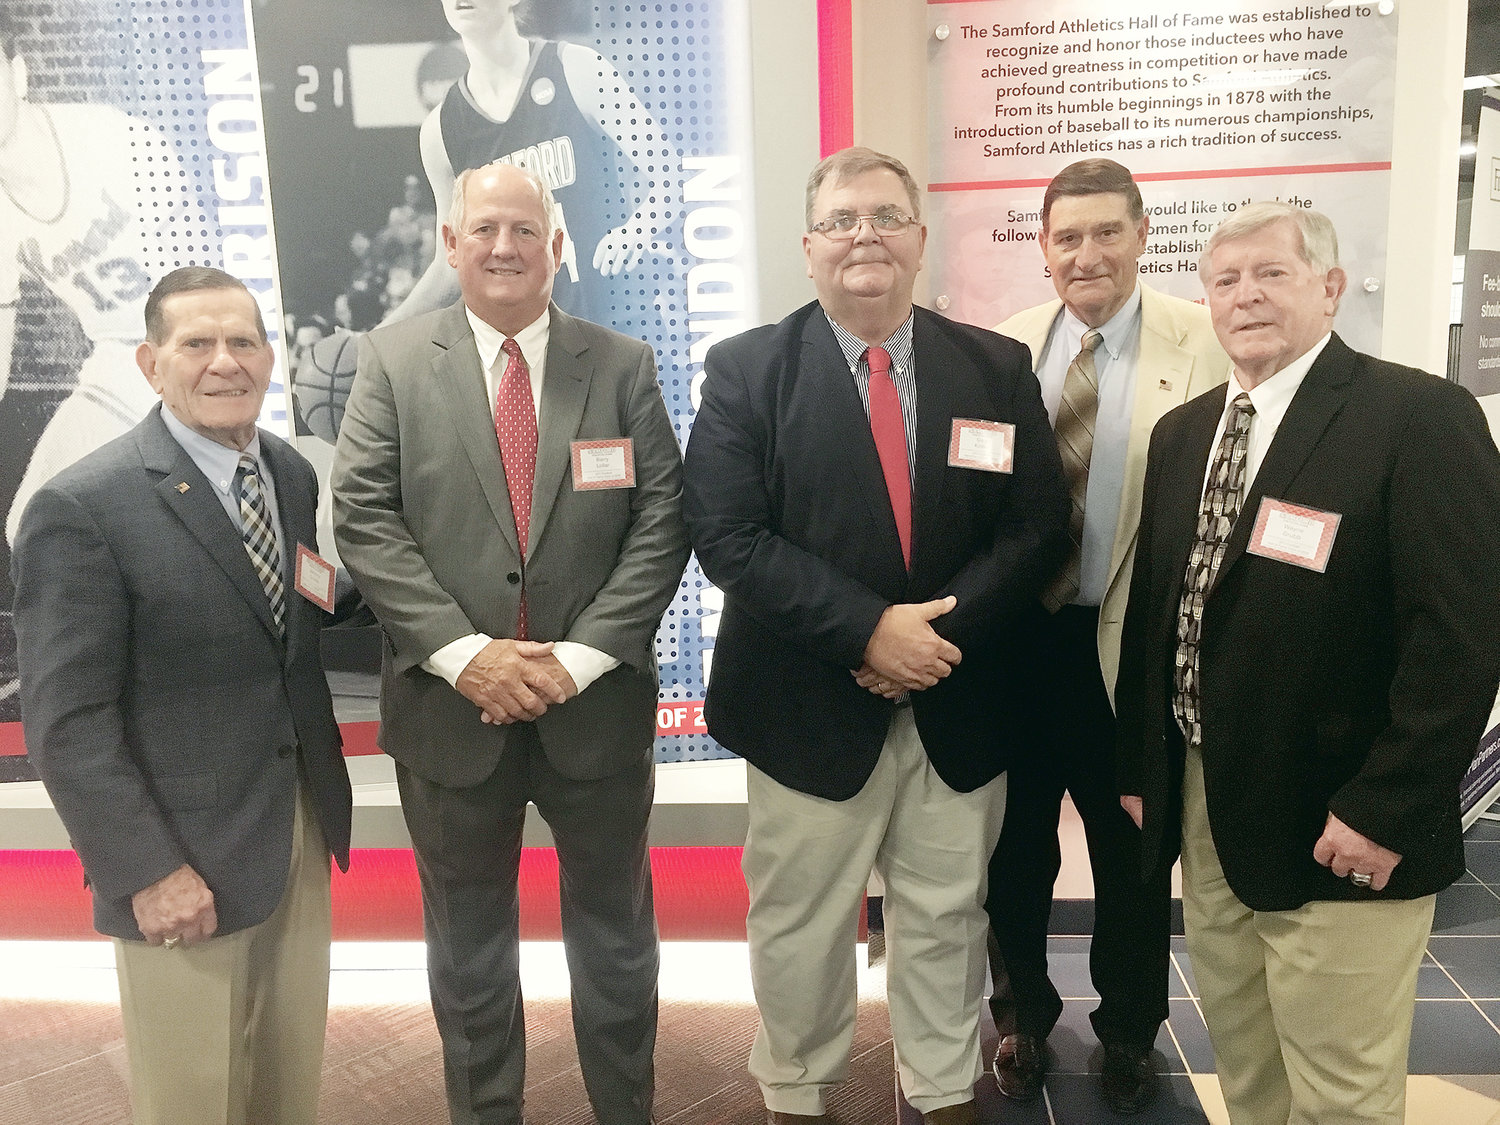 Pictured, from left to right, is Johnny Grubb, Barry Lollar, Gary Kinley, Bill Baker and Wayne Grubb, all former players on the Samford University 1971 football team. The team was recently inducted into the Samford University Athletics Hall of Fame. Johnny Grubb, Wayne Grubb, Kinley and Lollar are all from Walker County.